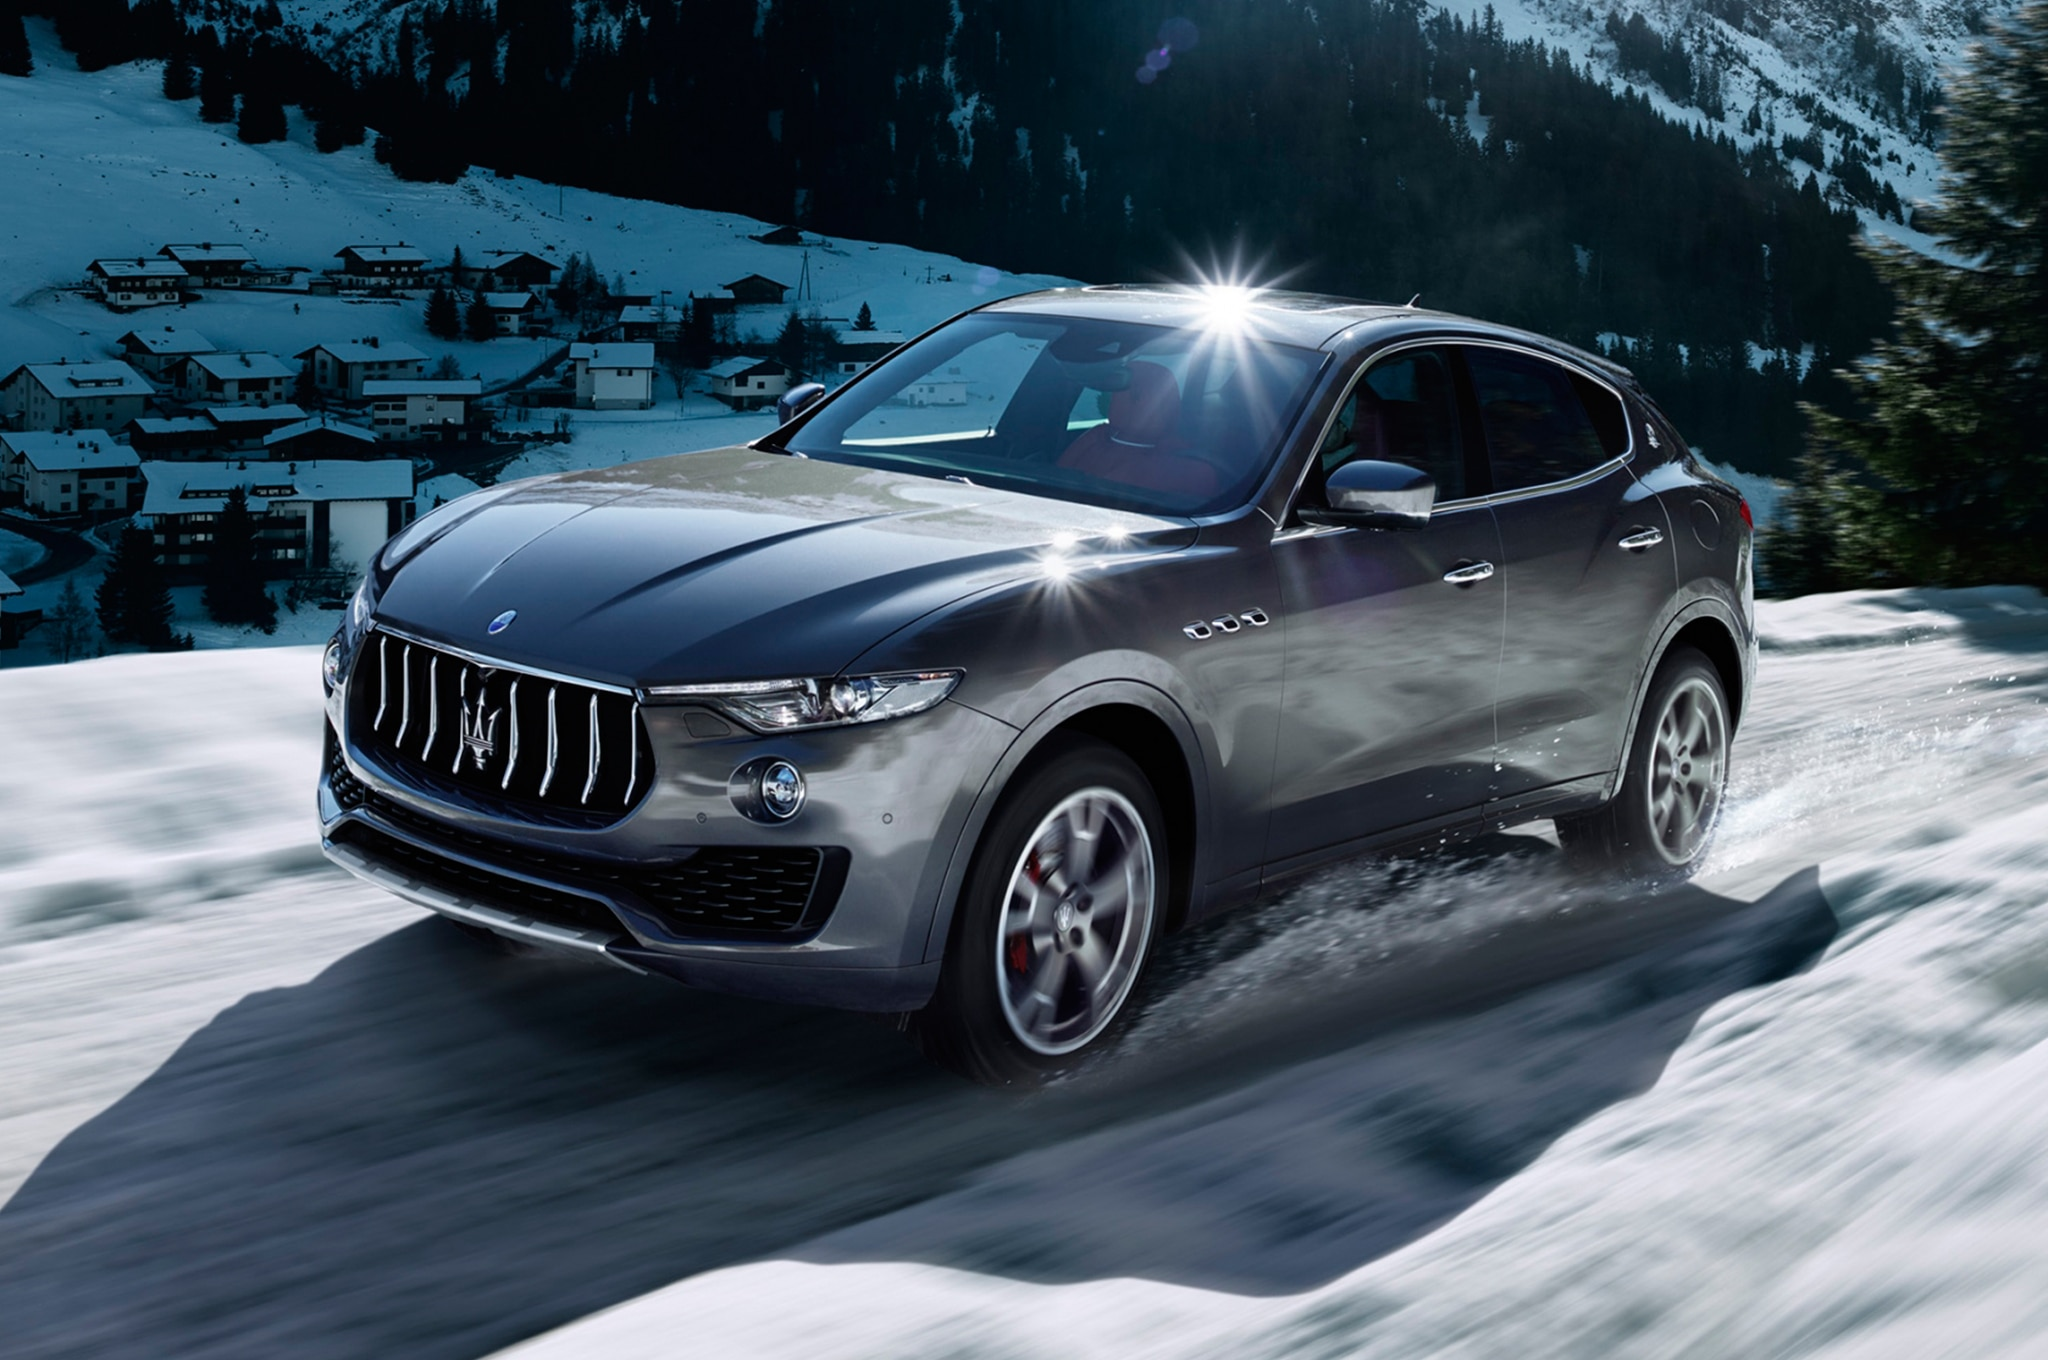 2017 maserati levante reviews and rating | motortrend